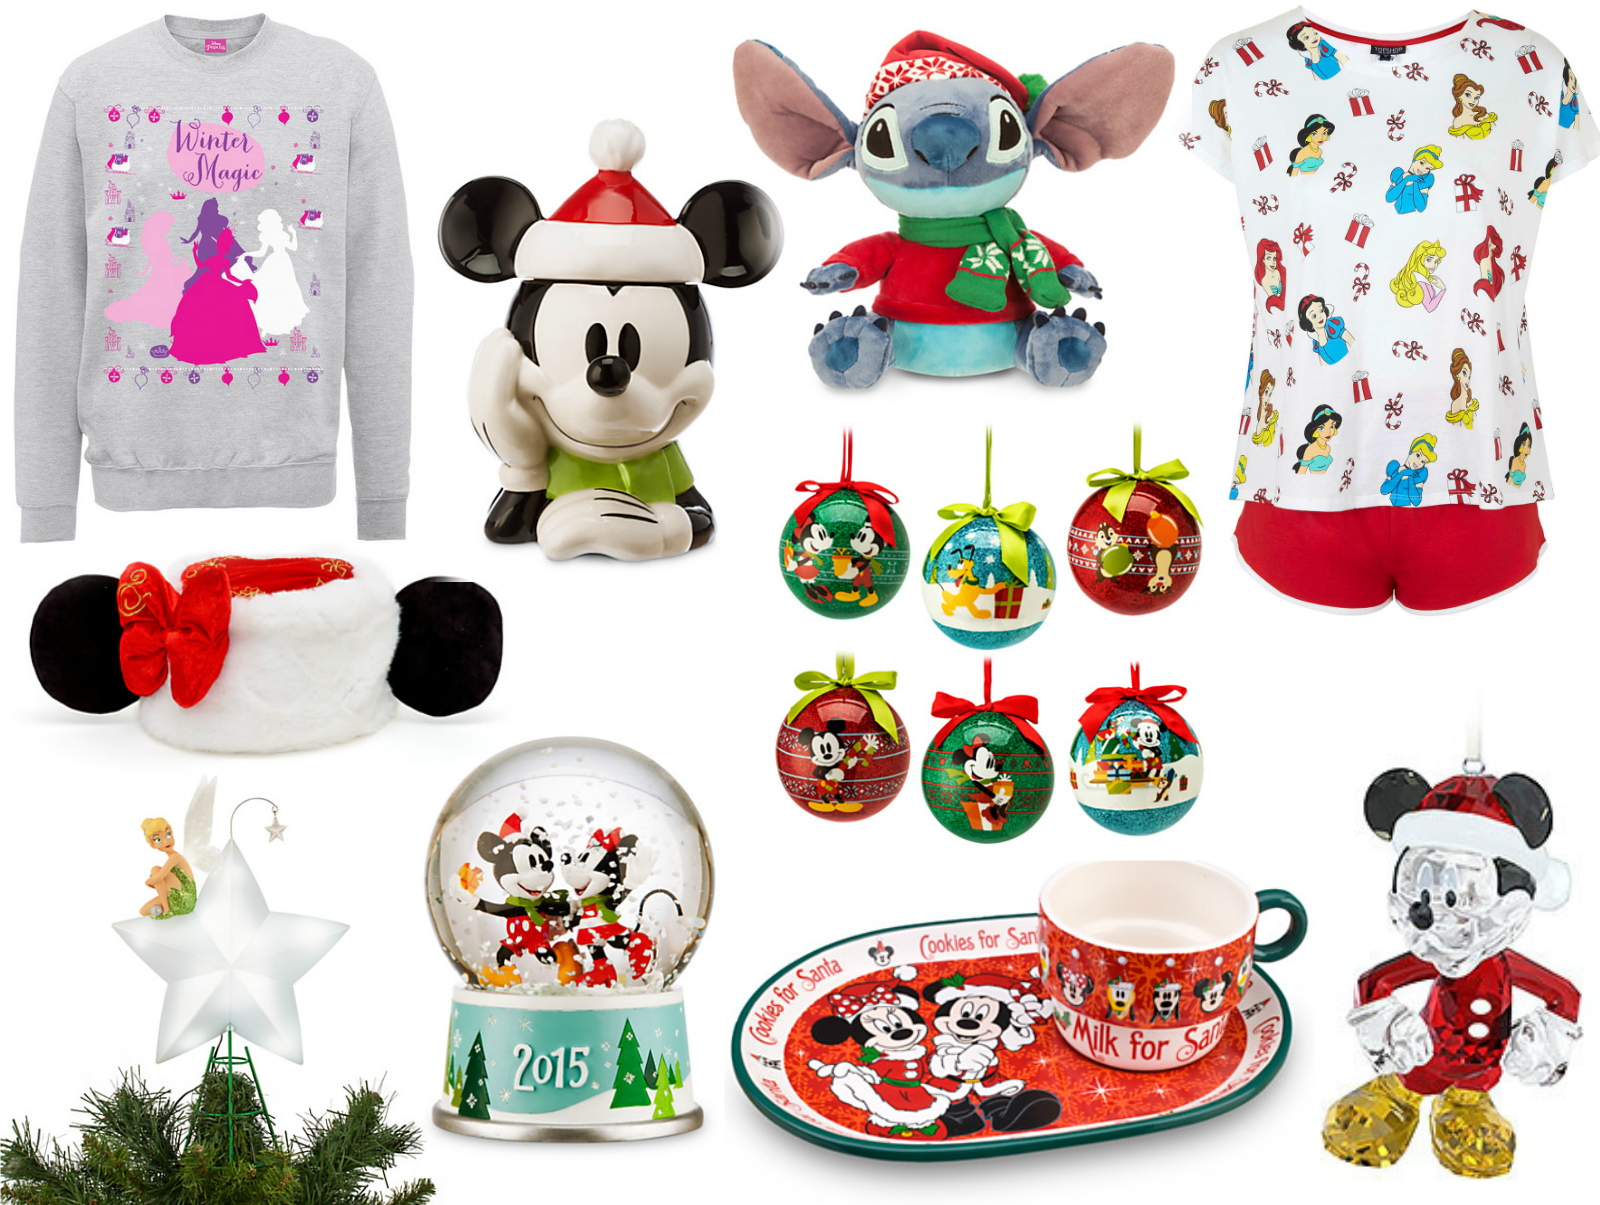 christmas themed disney stuff ive found the best of the best and popped it all into a post right here for you guys i know you guys love these - Disney Christmas 2015